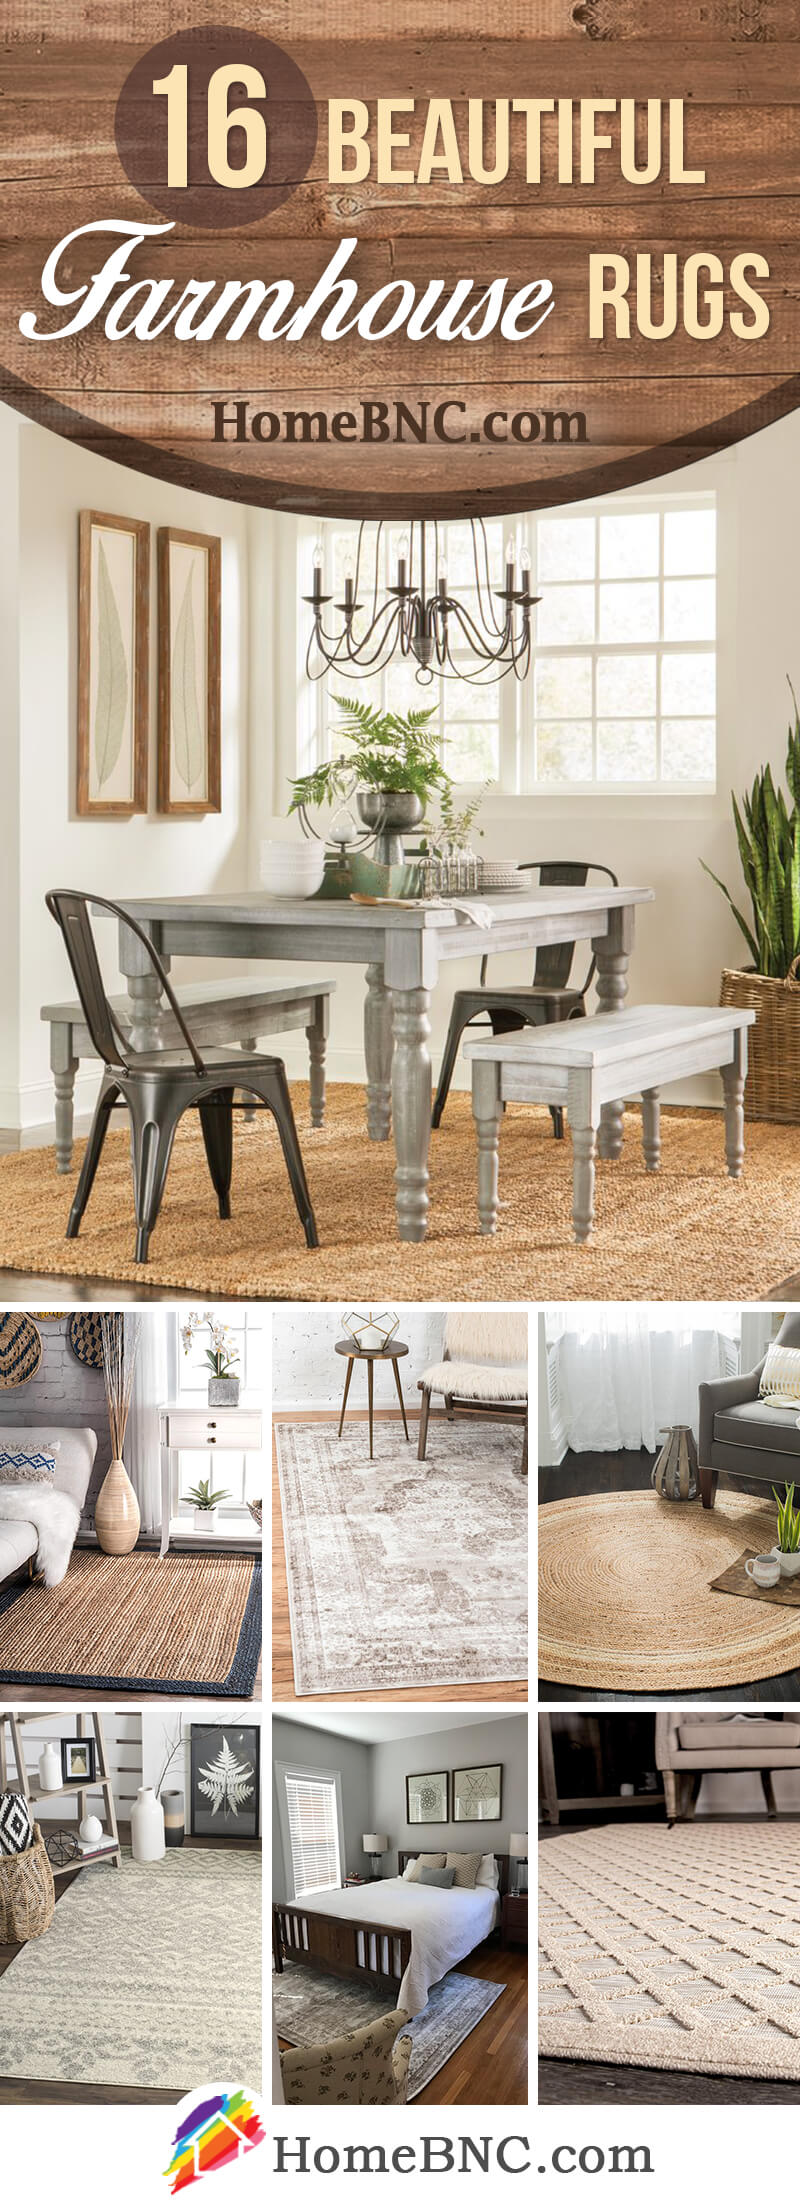 16 Best Farmhouse Rug Ideas And Designs For 2020